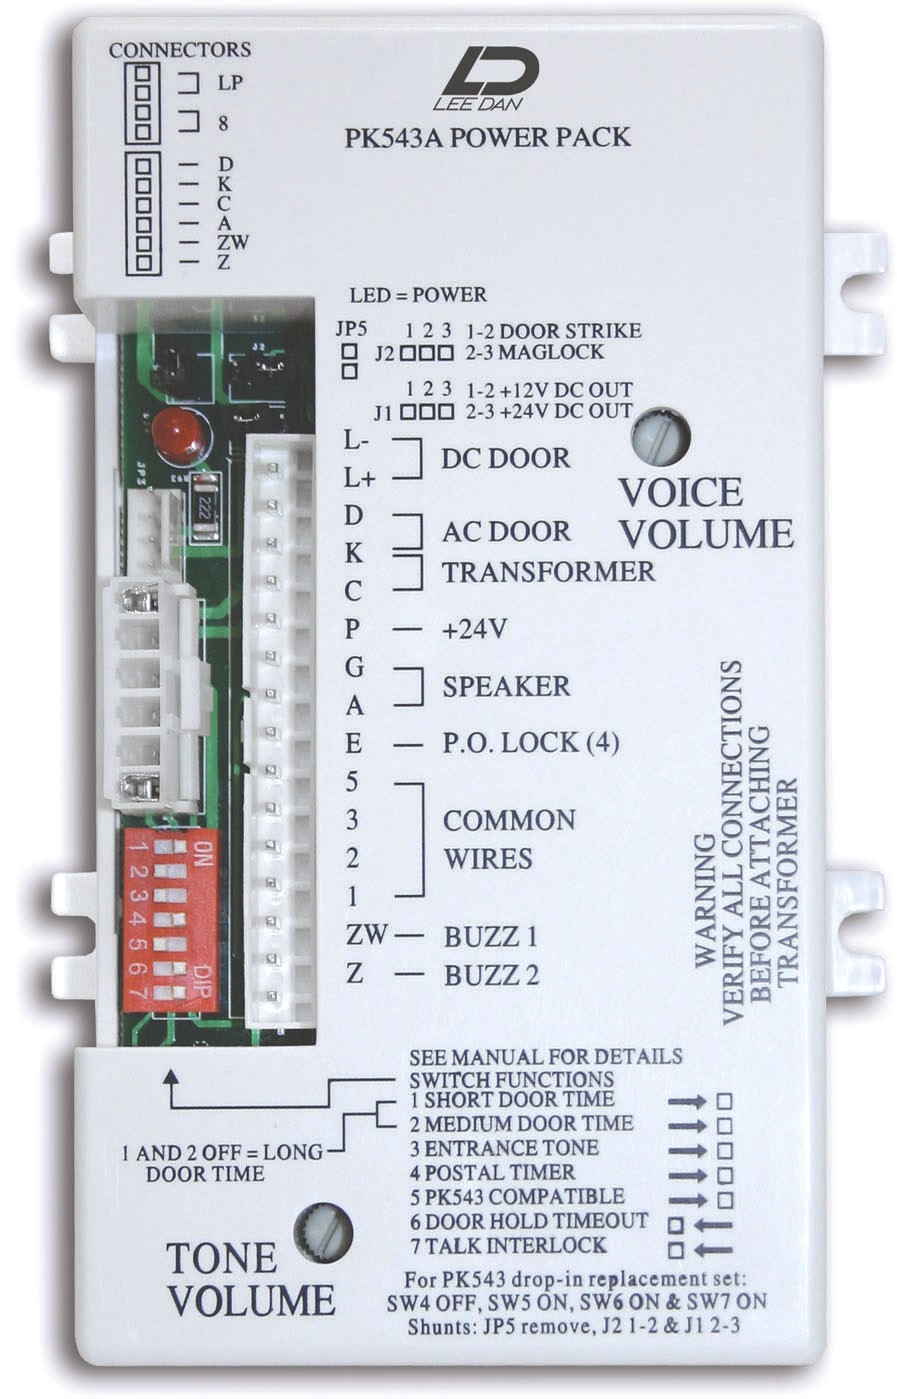 Connecting an Apartment Door Buzzer to a Smarthome Hub on wiring diagram for ice maker, wiring diagram for gas fireplace, wiring diagram for disposal, wiring diagram for dryer, wiring diagram for refrigerator, wiring diagram for kitchen, wiring diagram for garage, wiring diagram for freezer, wiring diagram for security cameras, wiring diagram for generator, wiring diagram for oven, wiring diagram for home theater, wiring diagram for family room, wiring diagram for dishwasher, wiring diagram for a/c, wiring diagram for central air conditioning, wiring diagram for stove, wiring diagram for internet, wiring diagram for cd player,